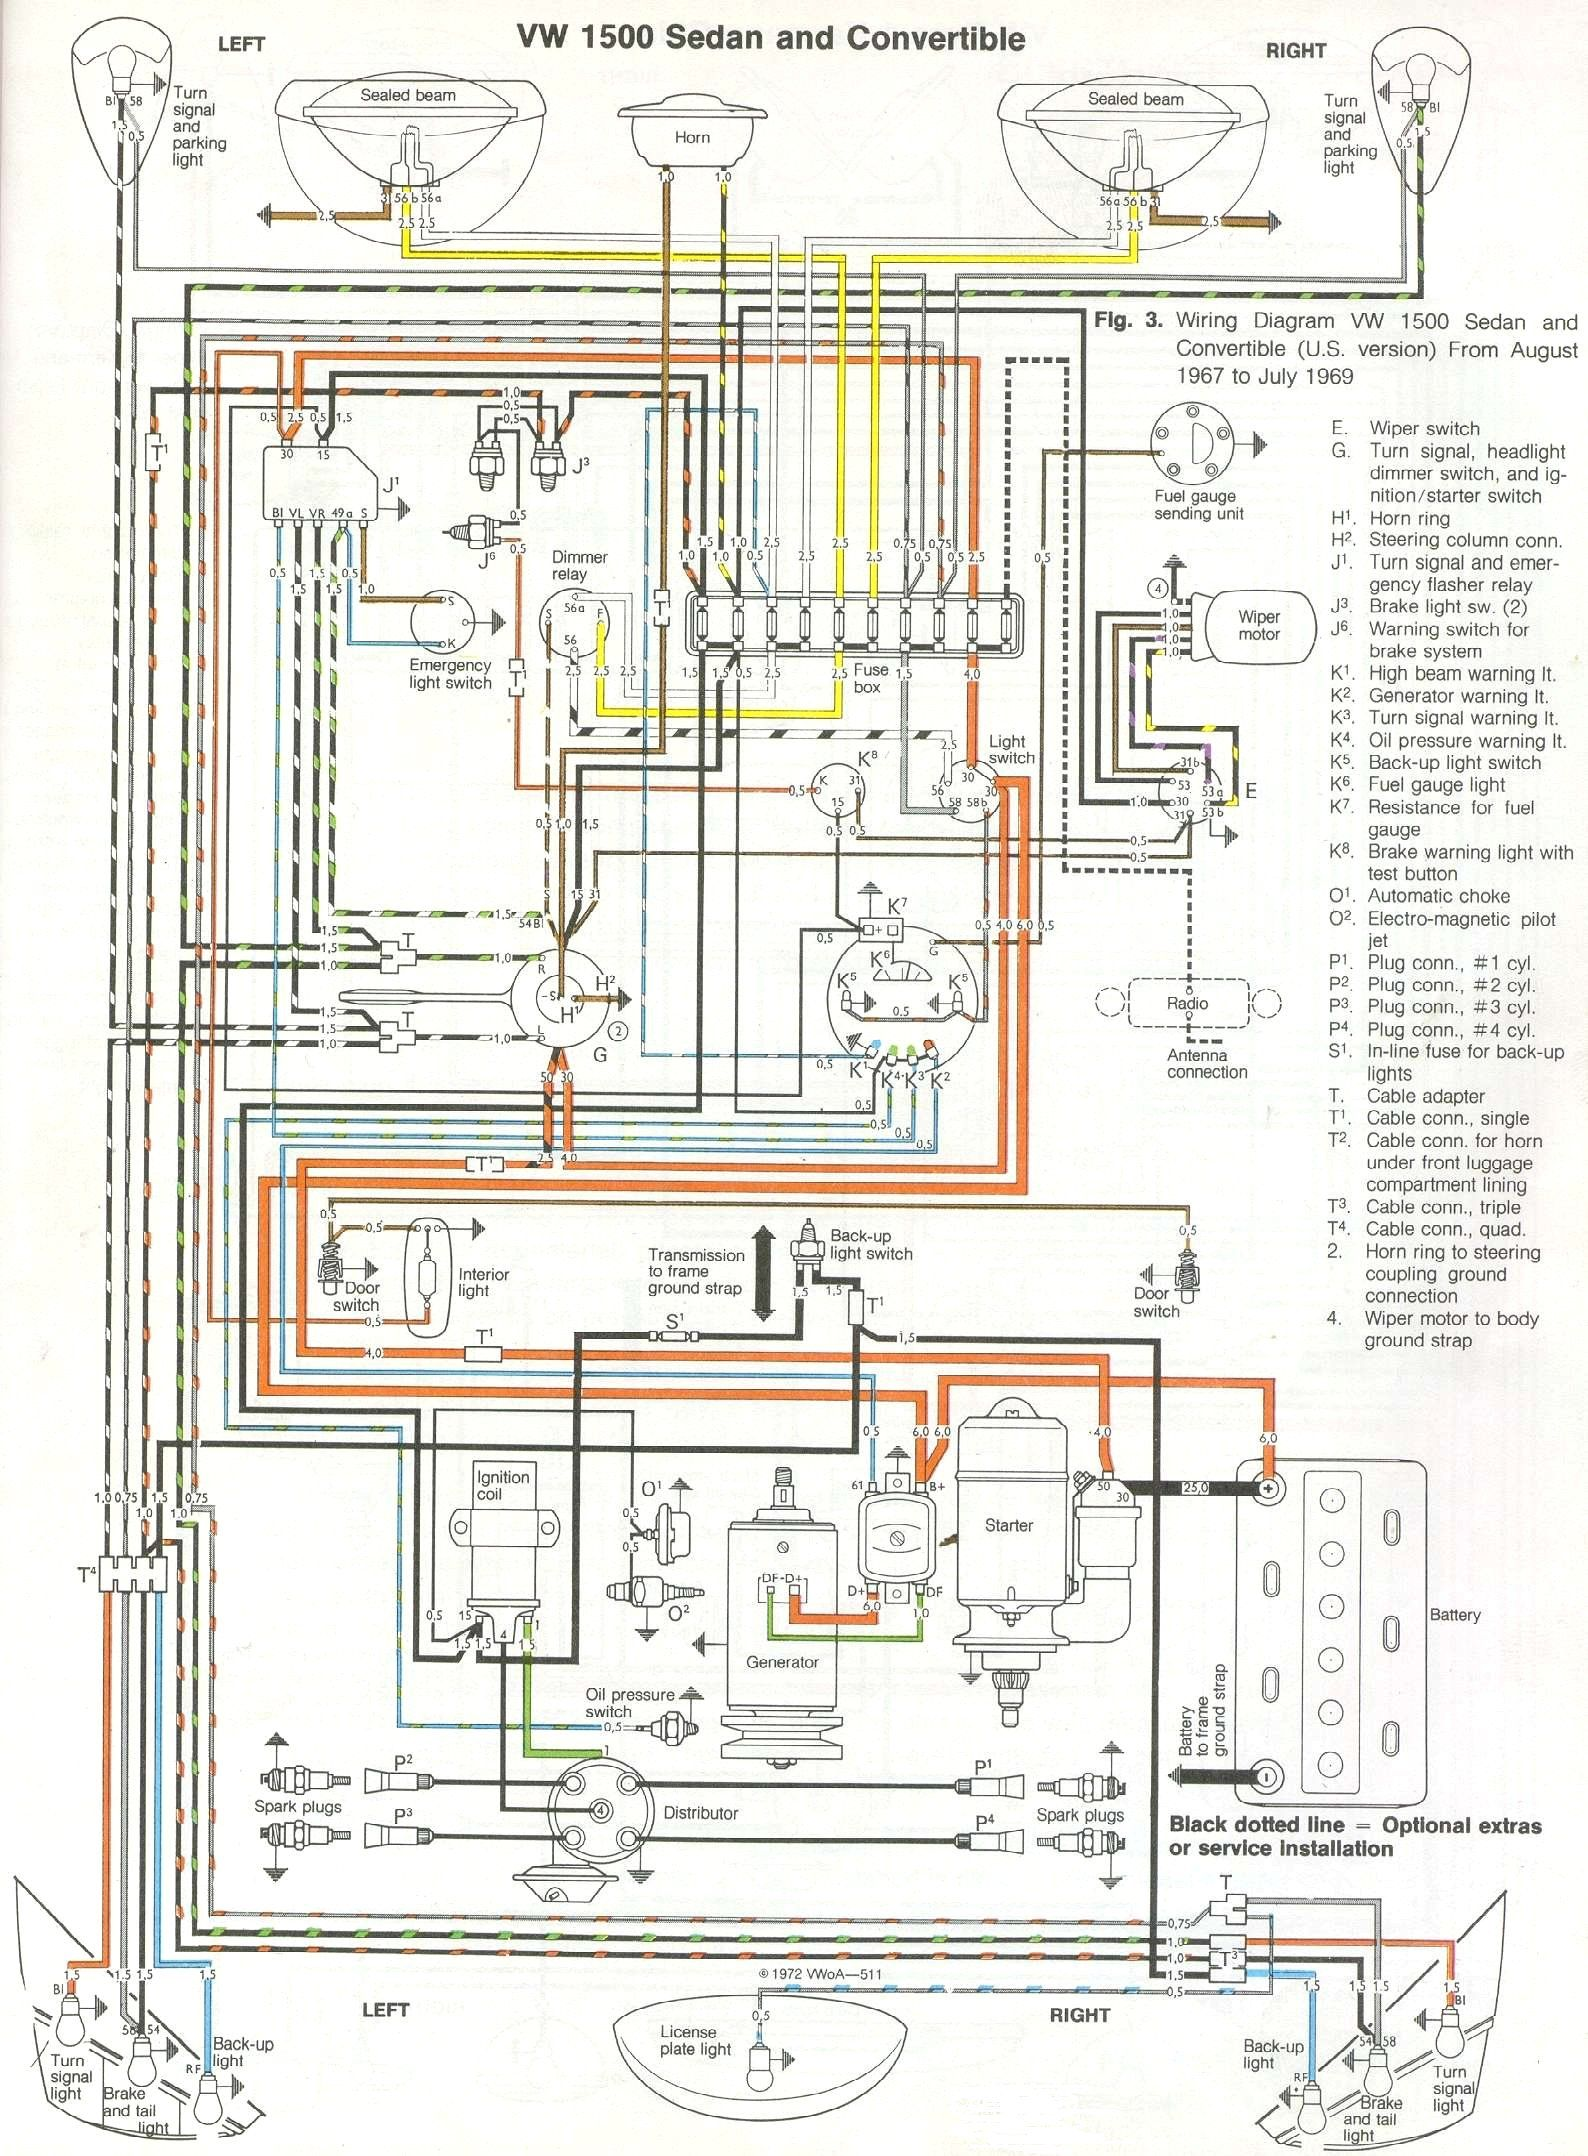 1968 Volkswagen Wiring Diagram | manage wiring diagram -  manage.ilcasaledelbarone.itilcasaledelbarone.it